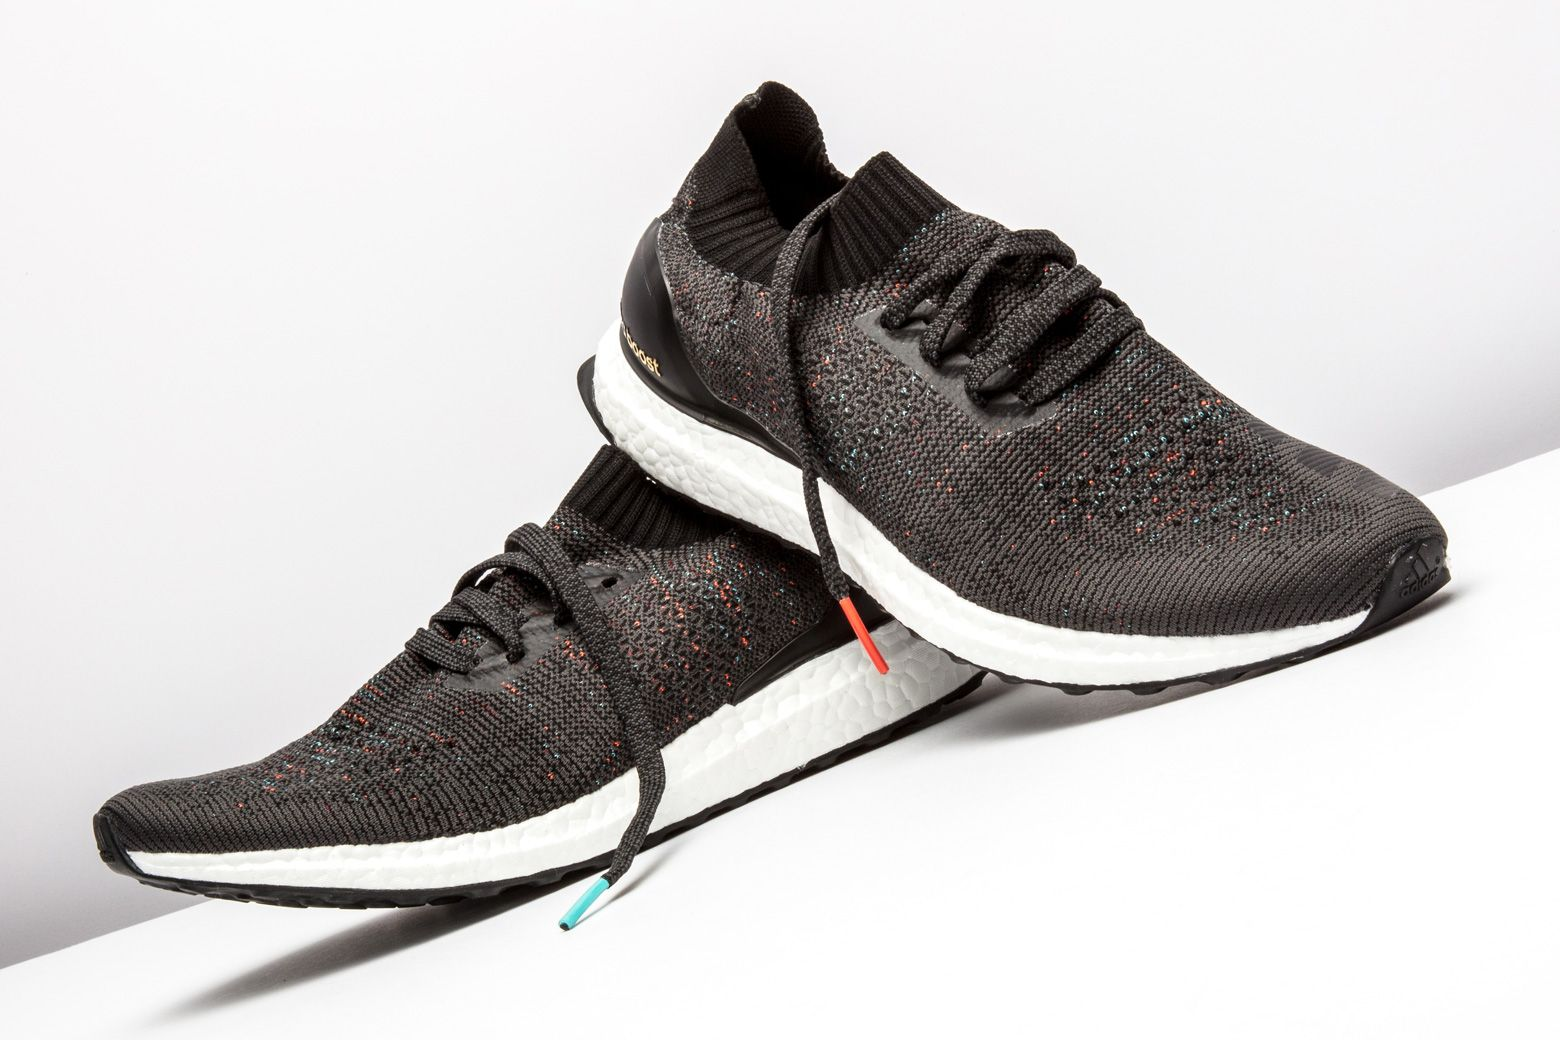 4b208c507 adidas adds some flair to the Ultra Boost Uncaged model with this